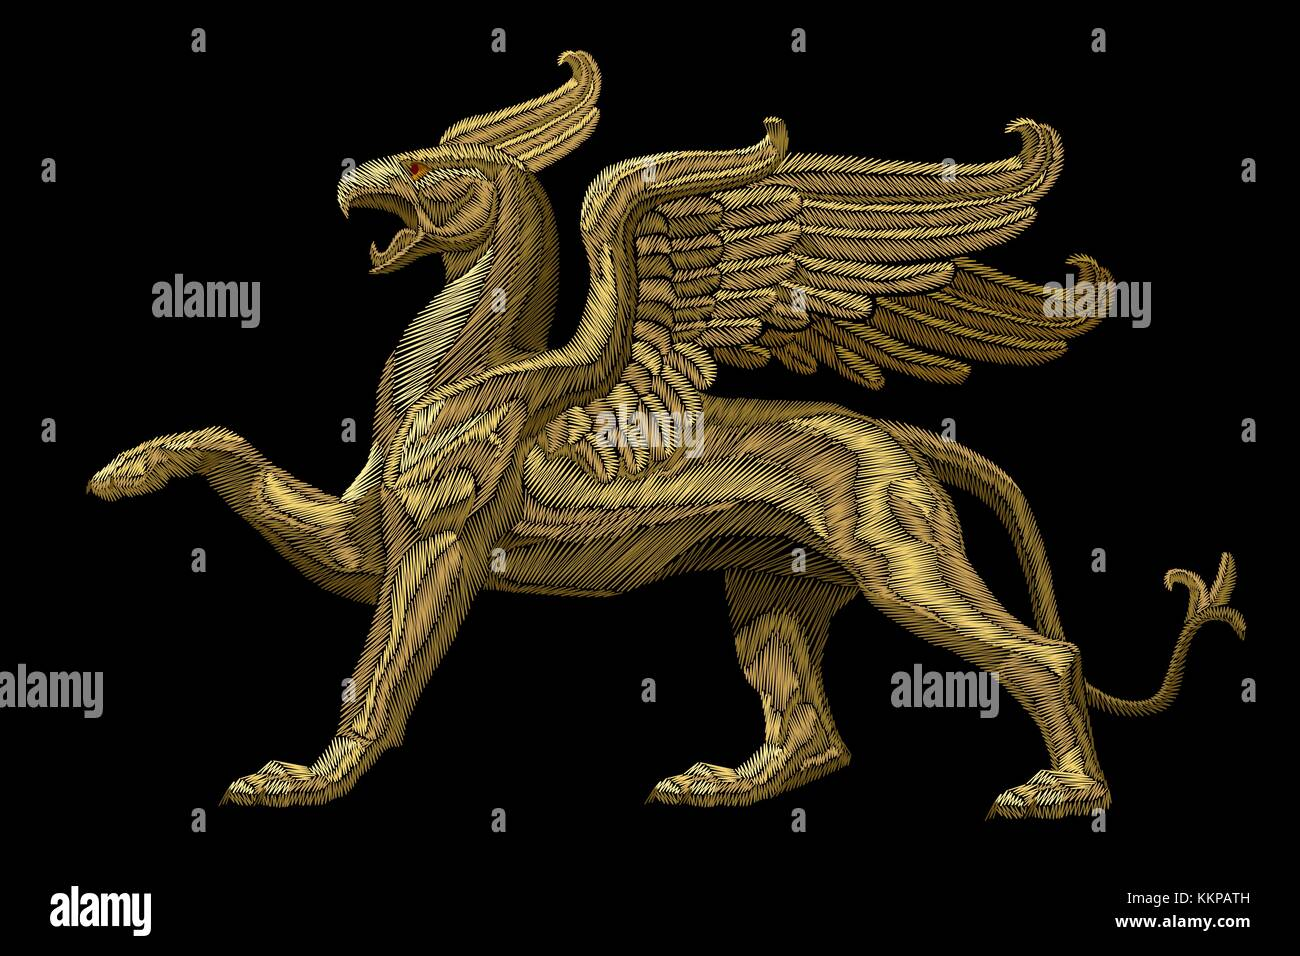 Golden textured embroidery griffin textile patch design. Fashion decoration ornament fabric print. Gold on black - Stock Image